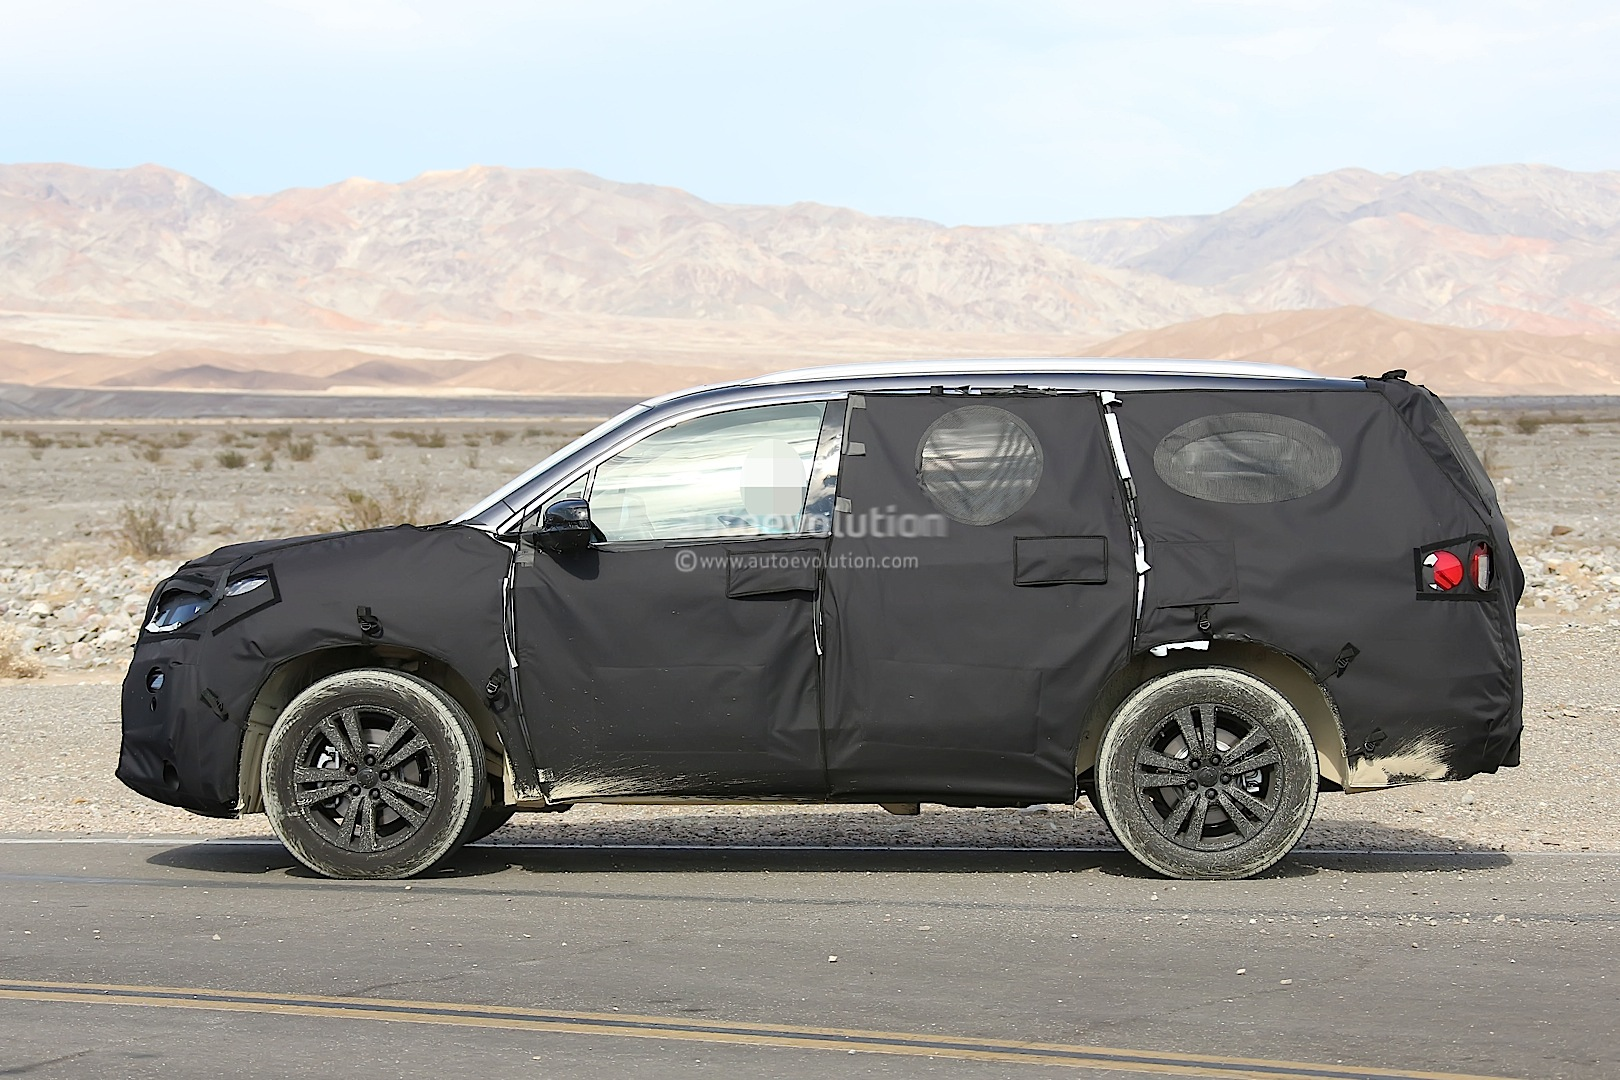 New Honda Pilot >> 2016 Honda Pilot Spied Testing in the Desert - autoevolution